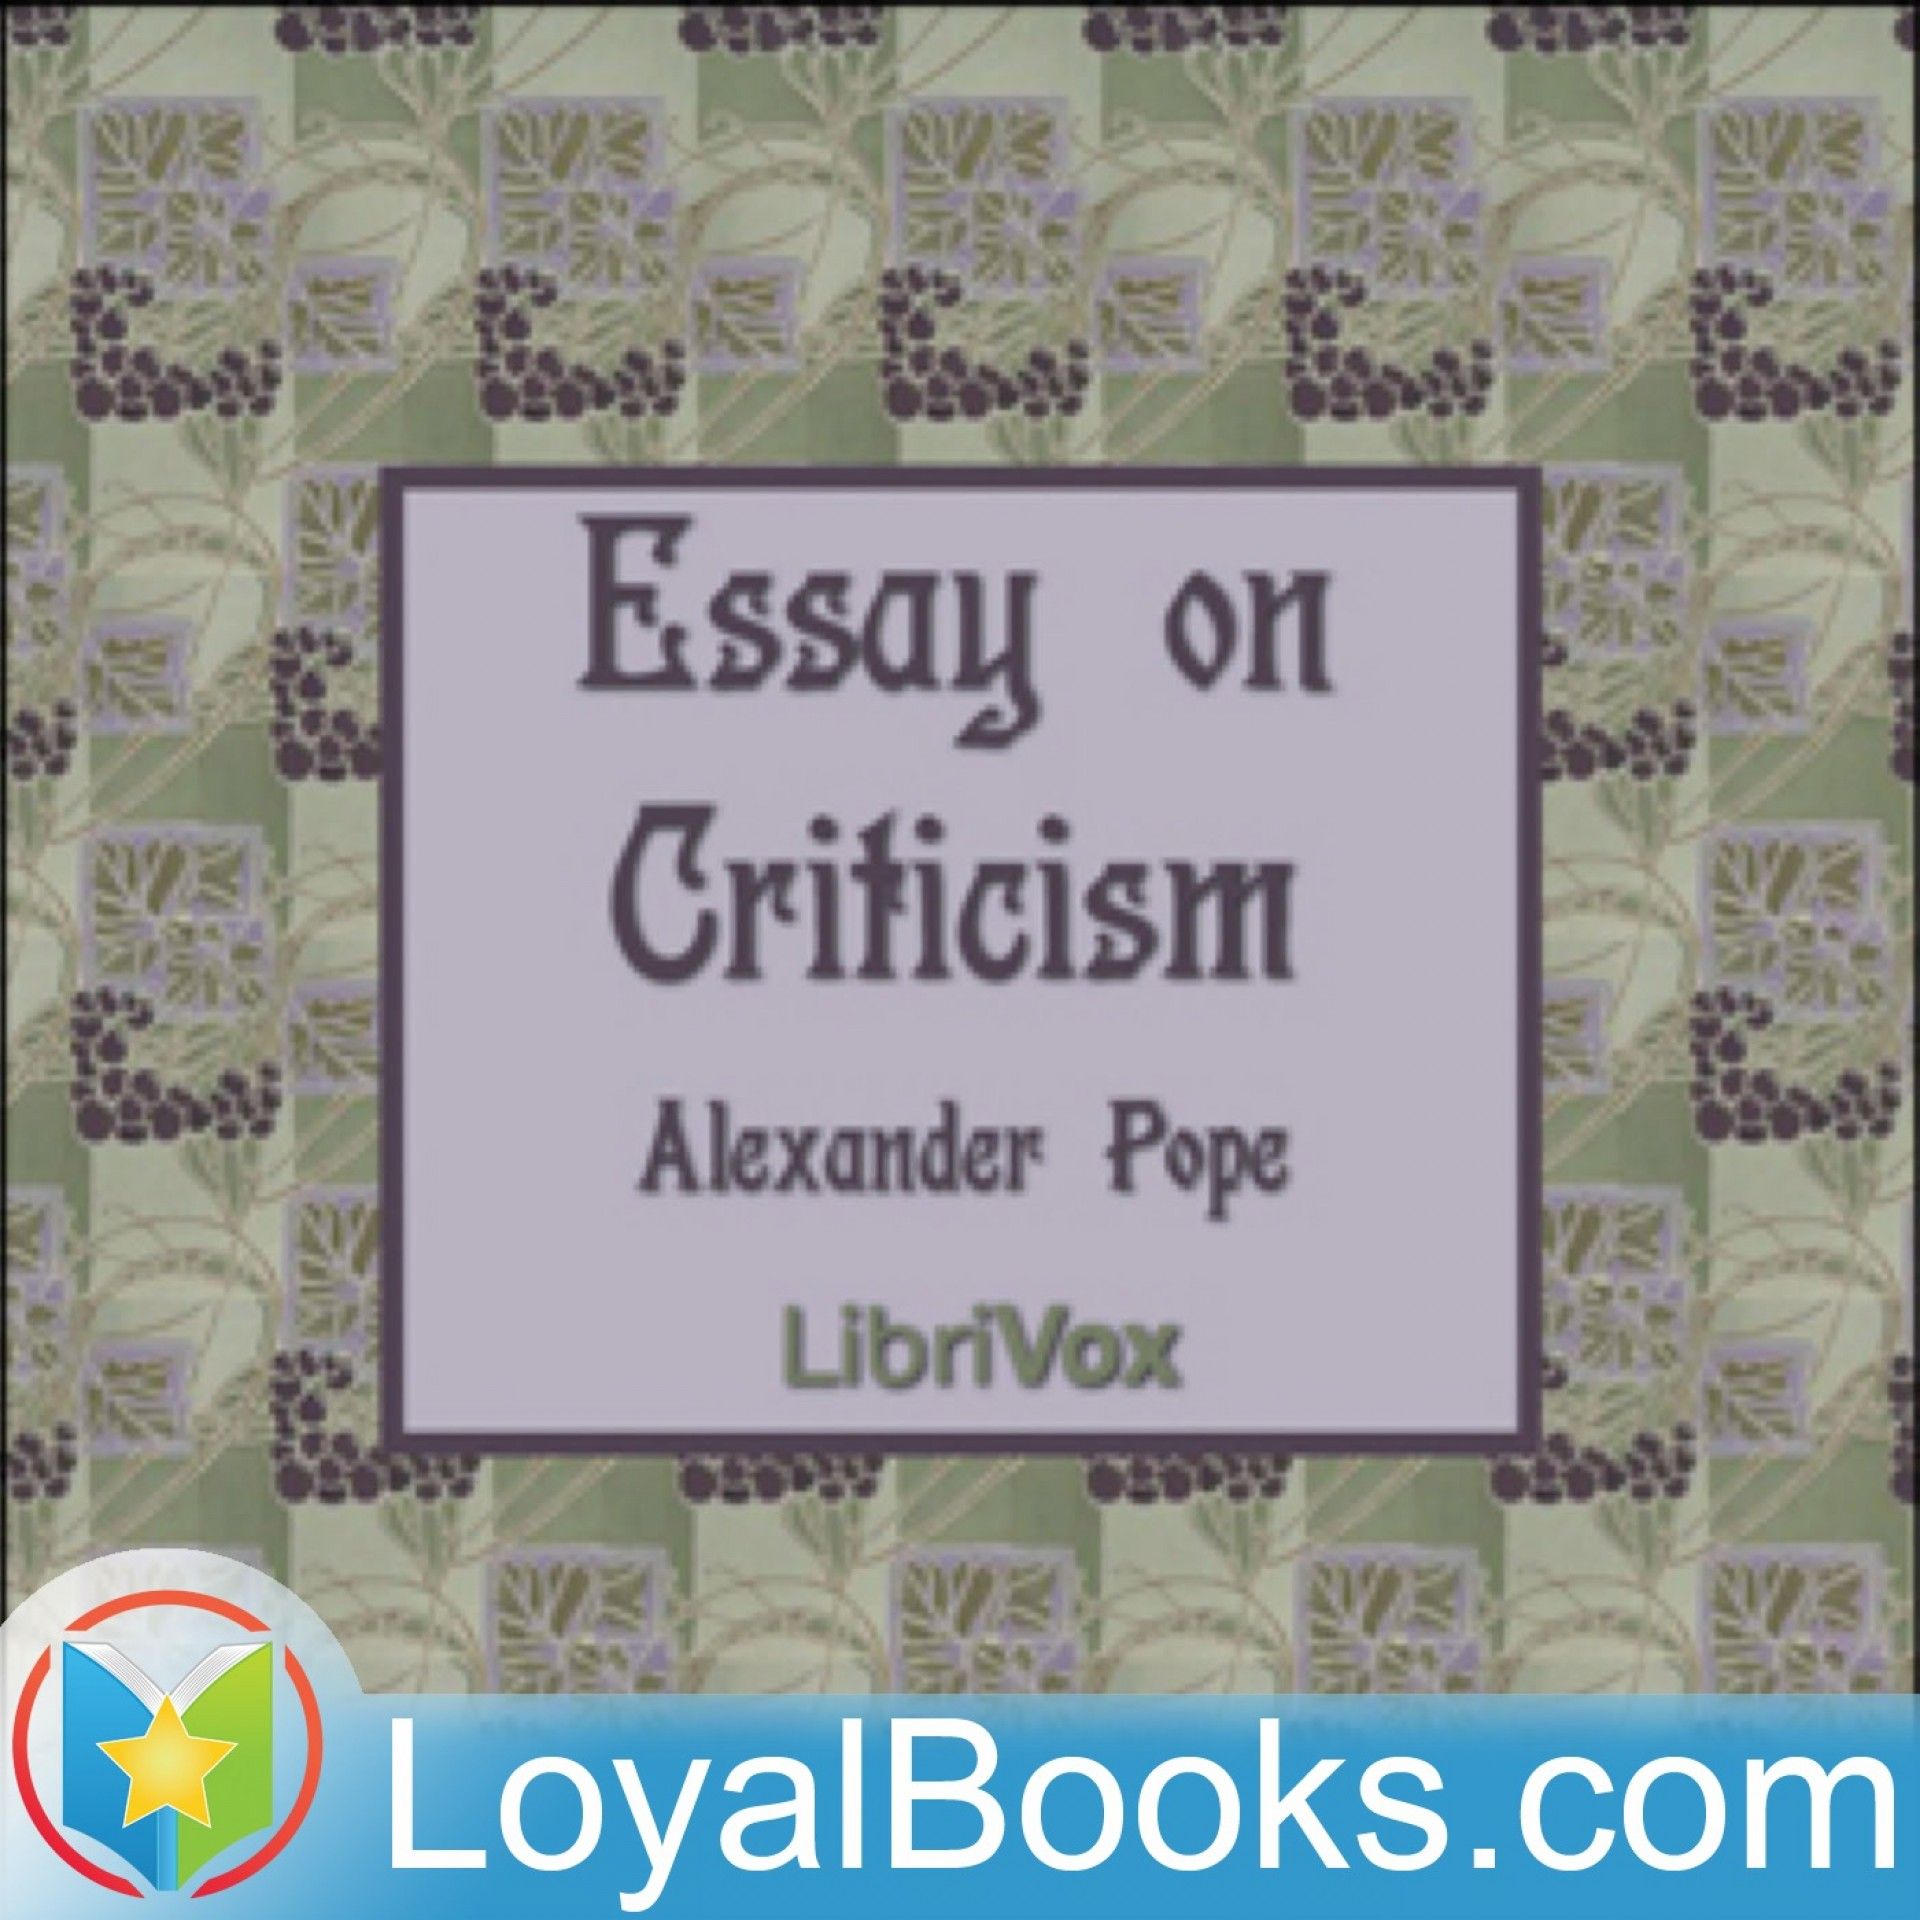 014 Essay On Criticism By Alexander Pope An Sensational Lines 233 To 415 Part 3 Analysis Pdf 1920